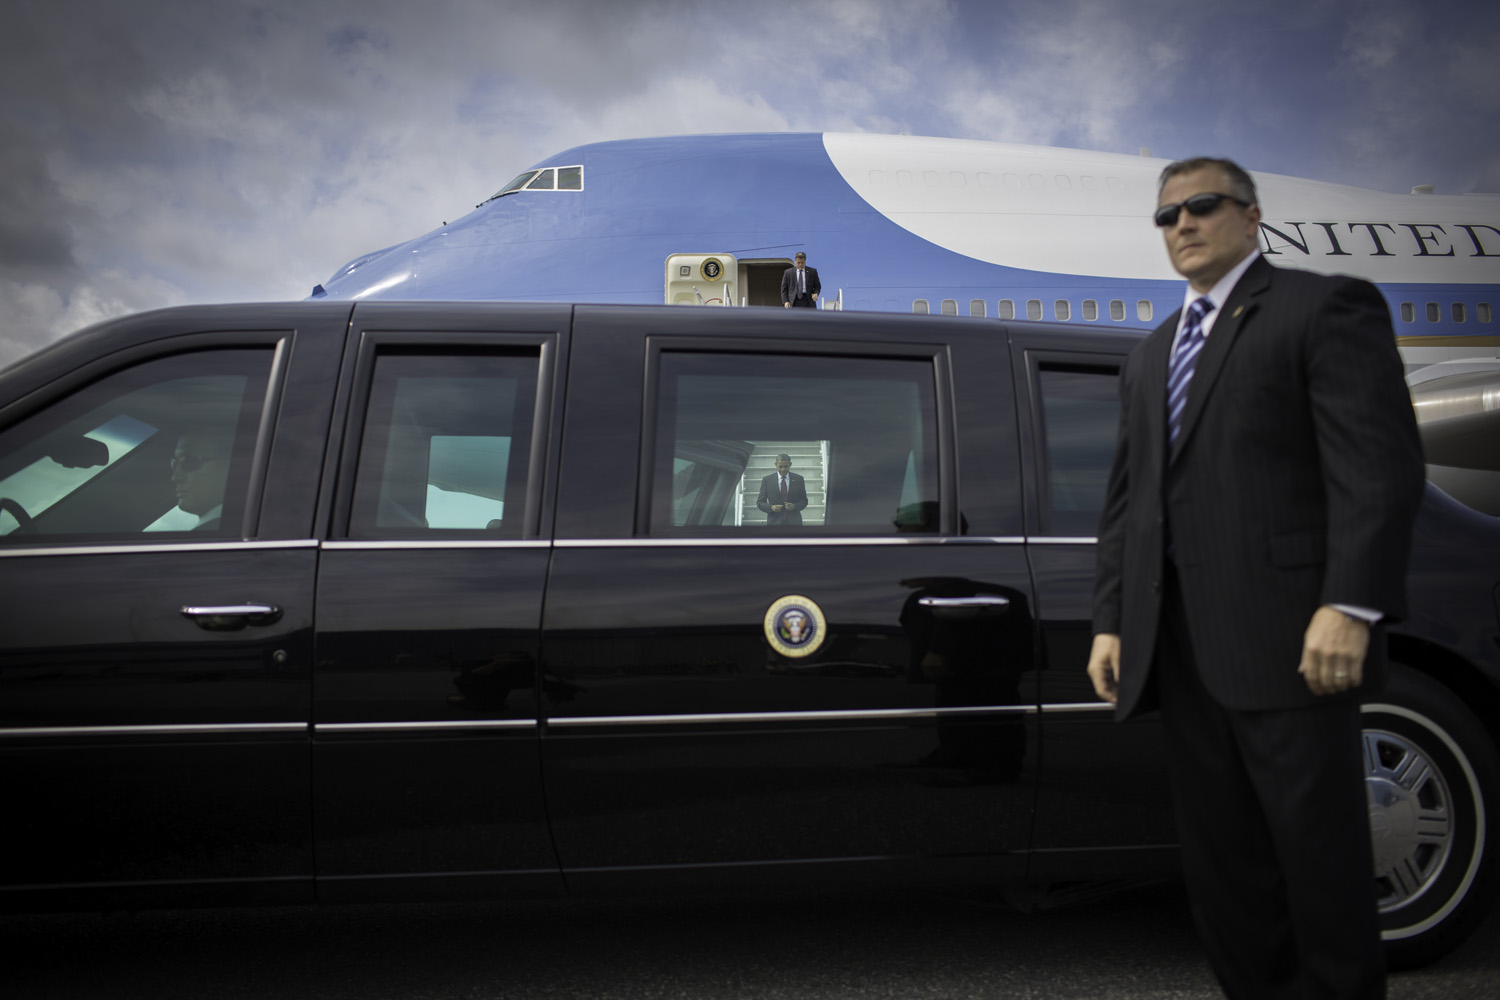 All photographs taken Aug. 18, 2012President Obama exits Air Force One upon arriving at the airport in Manchester, N.H.